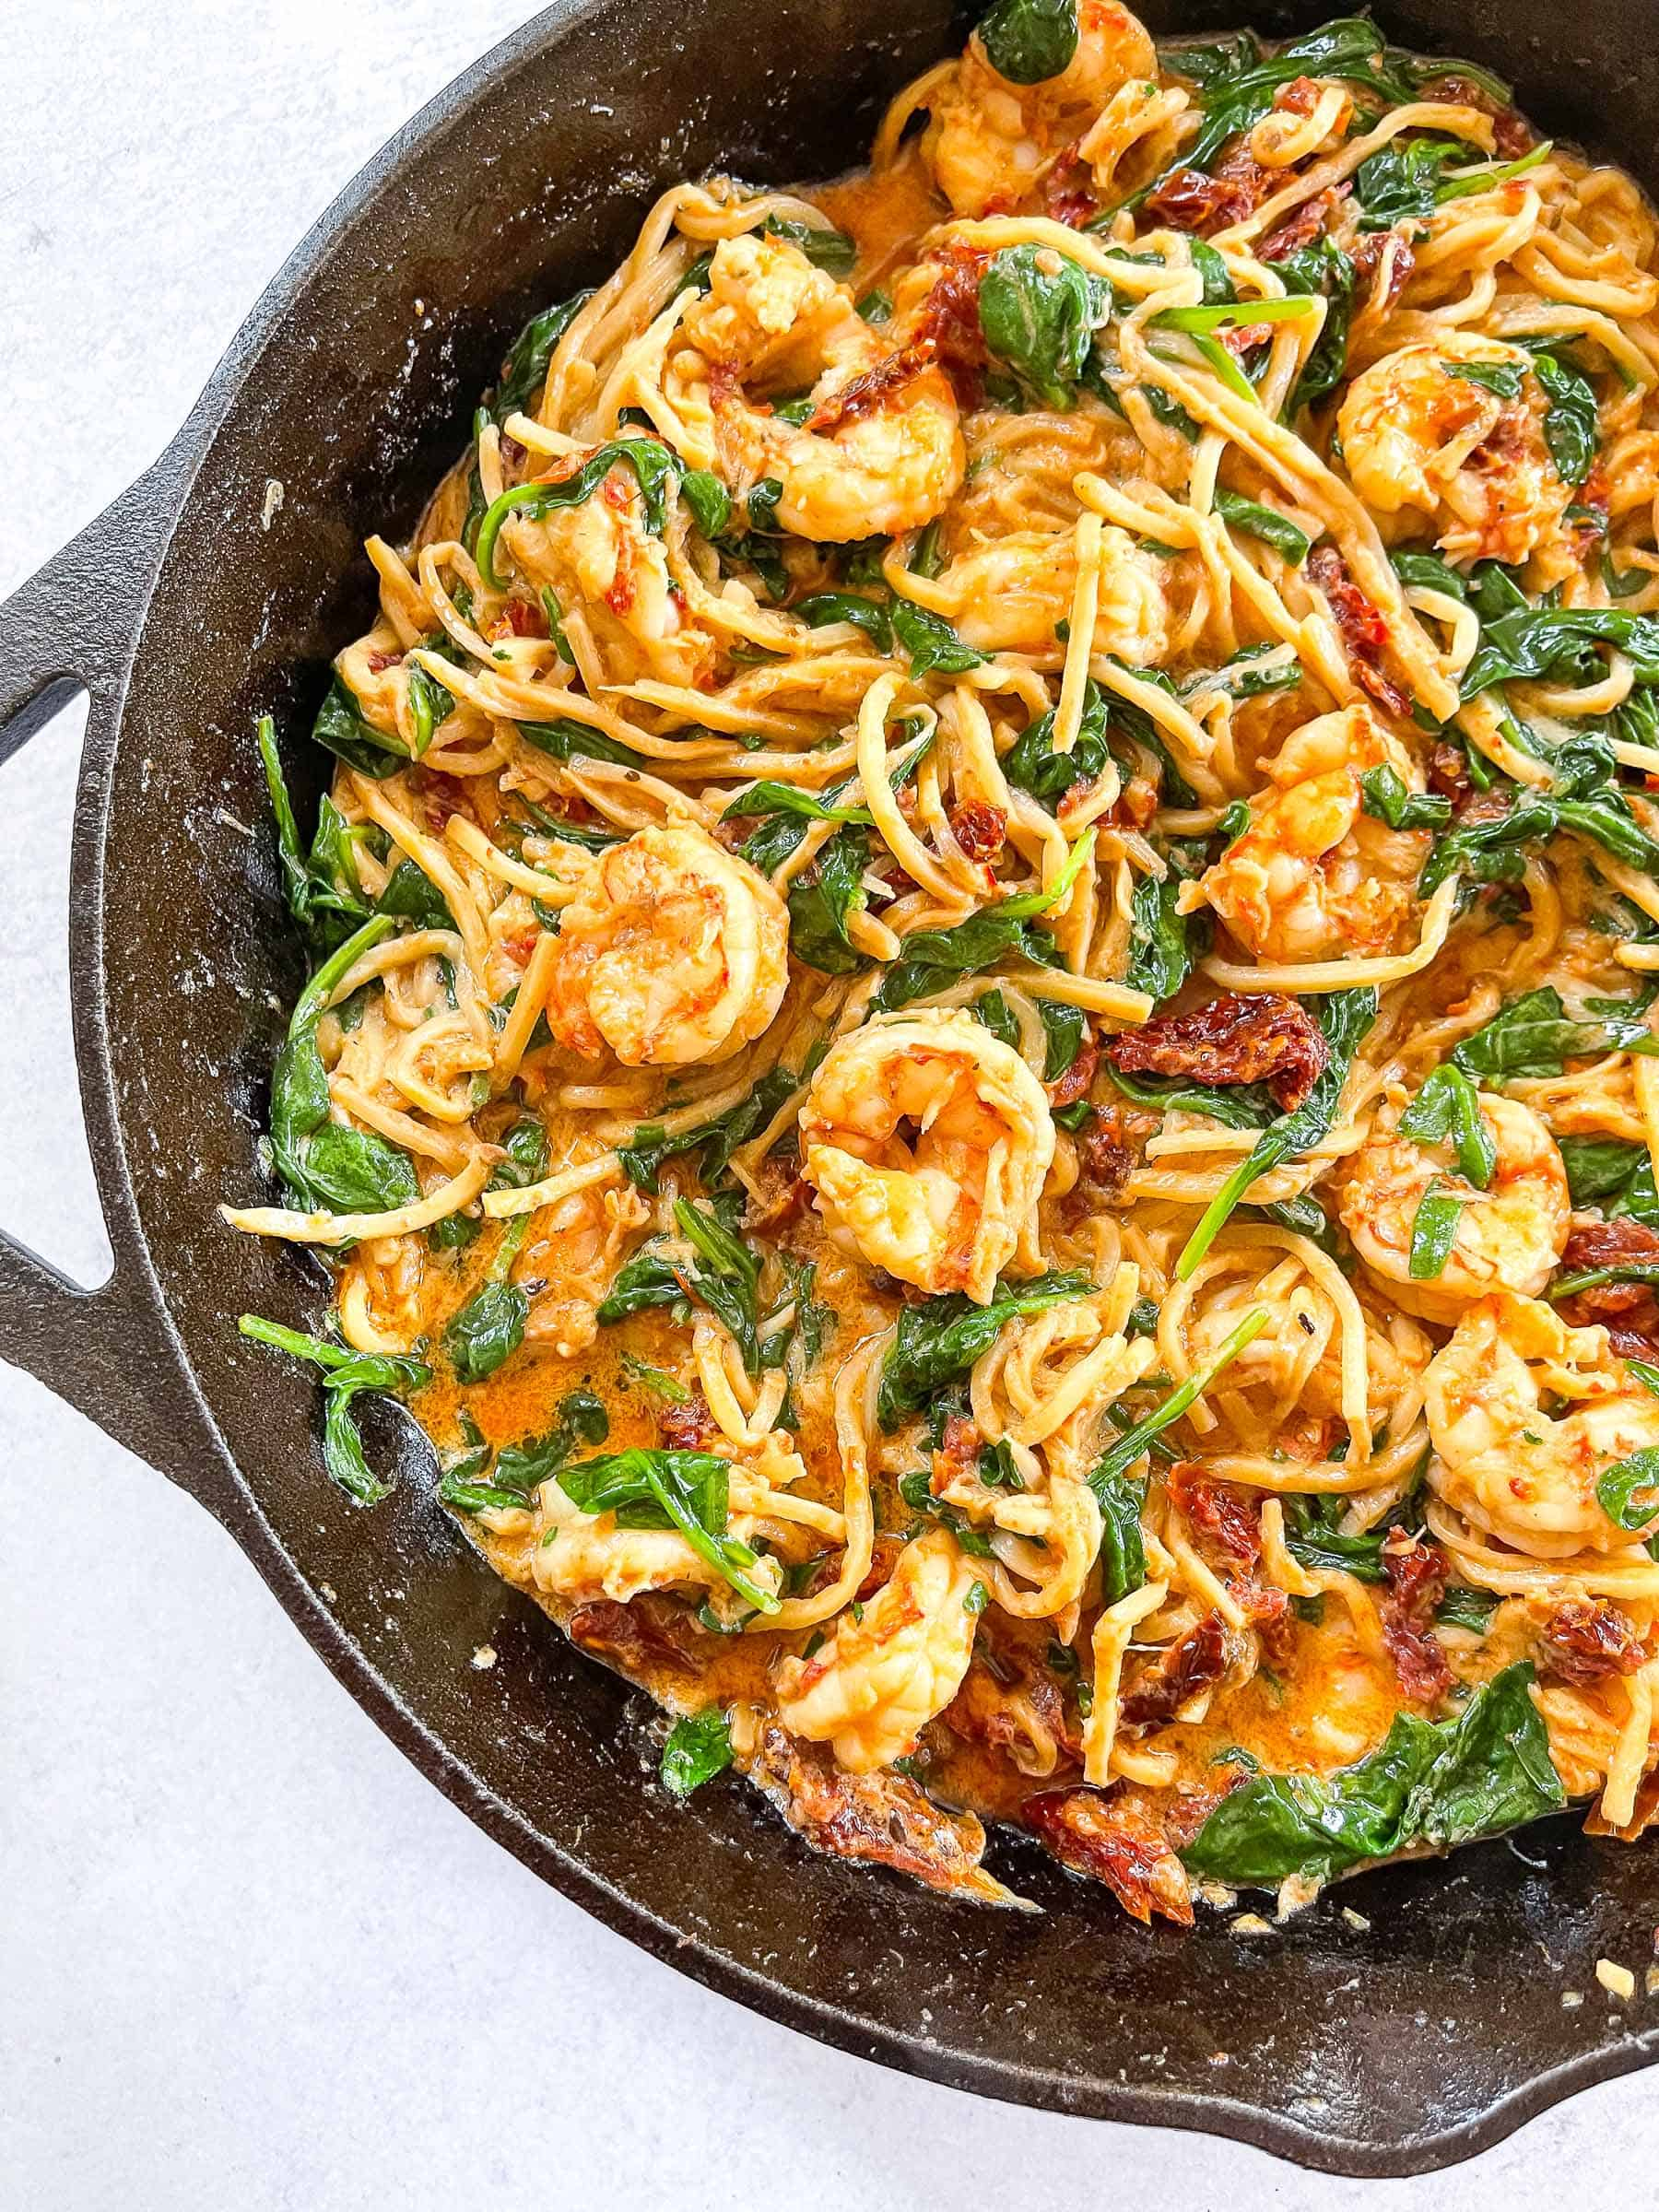 keto creamy tuscan shrimp pasta in a cast iron skillet with a white background